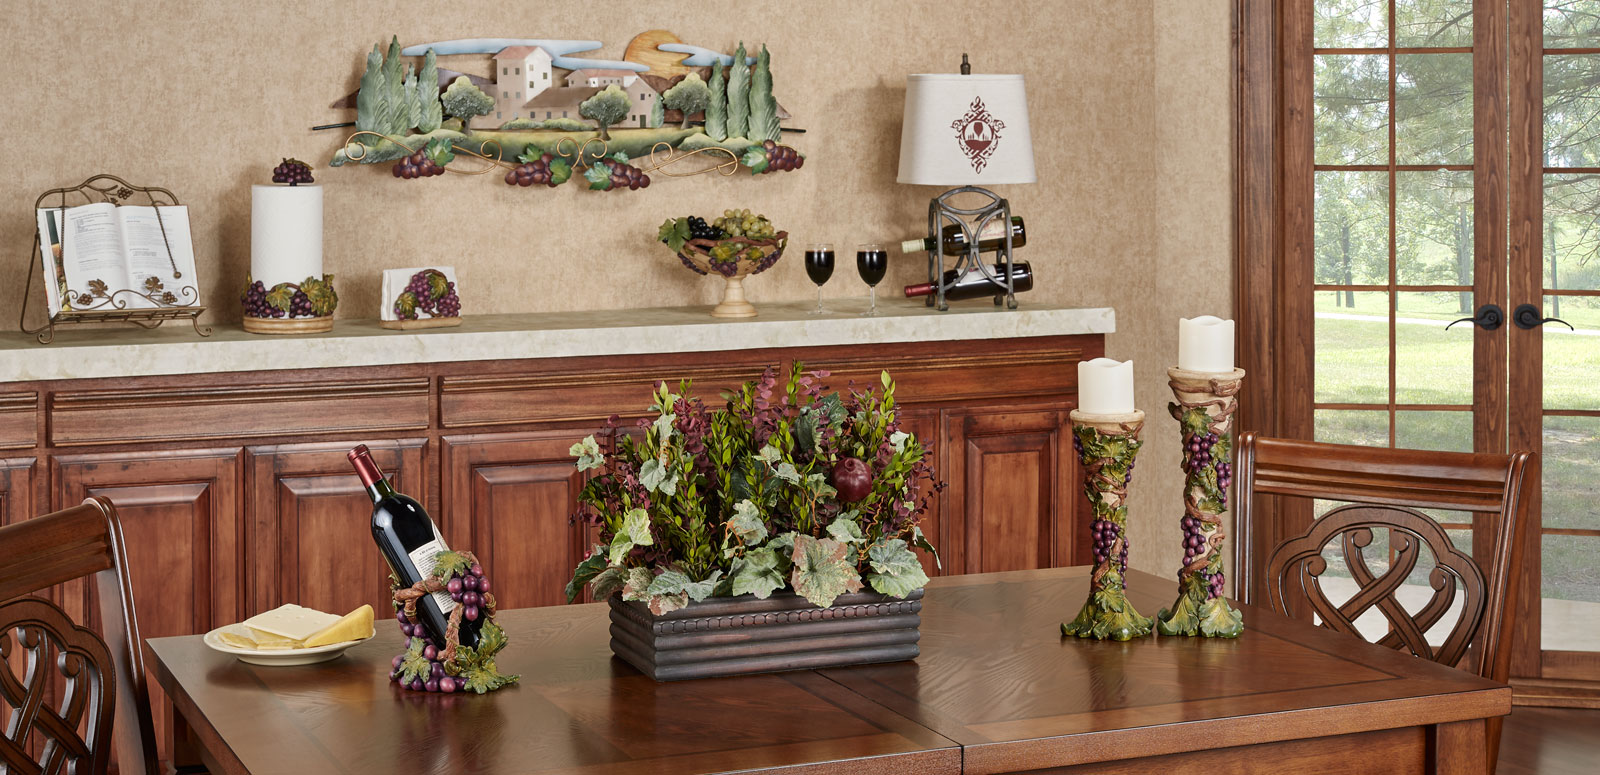 Grapes Kitchen Decor | Touch of Class